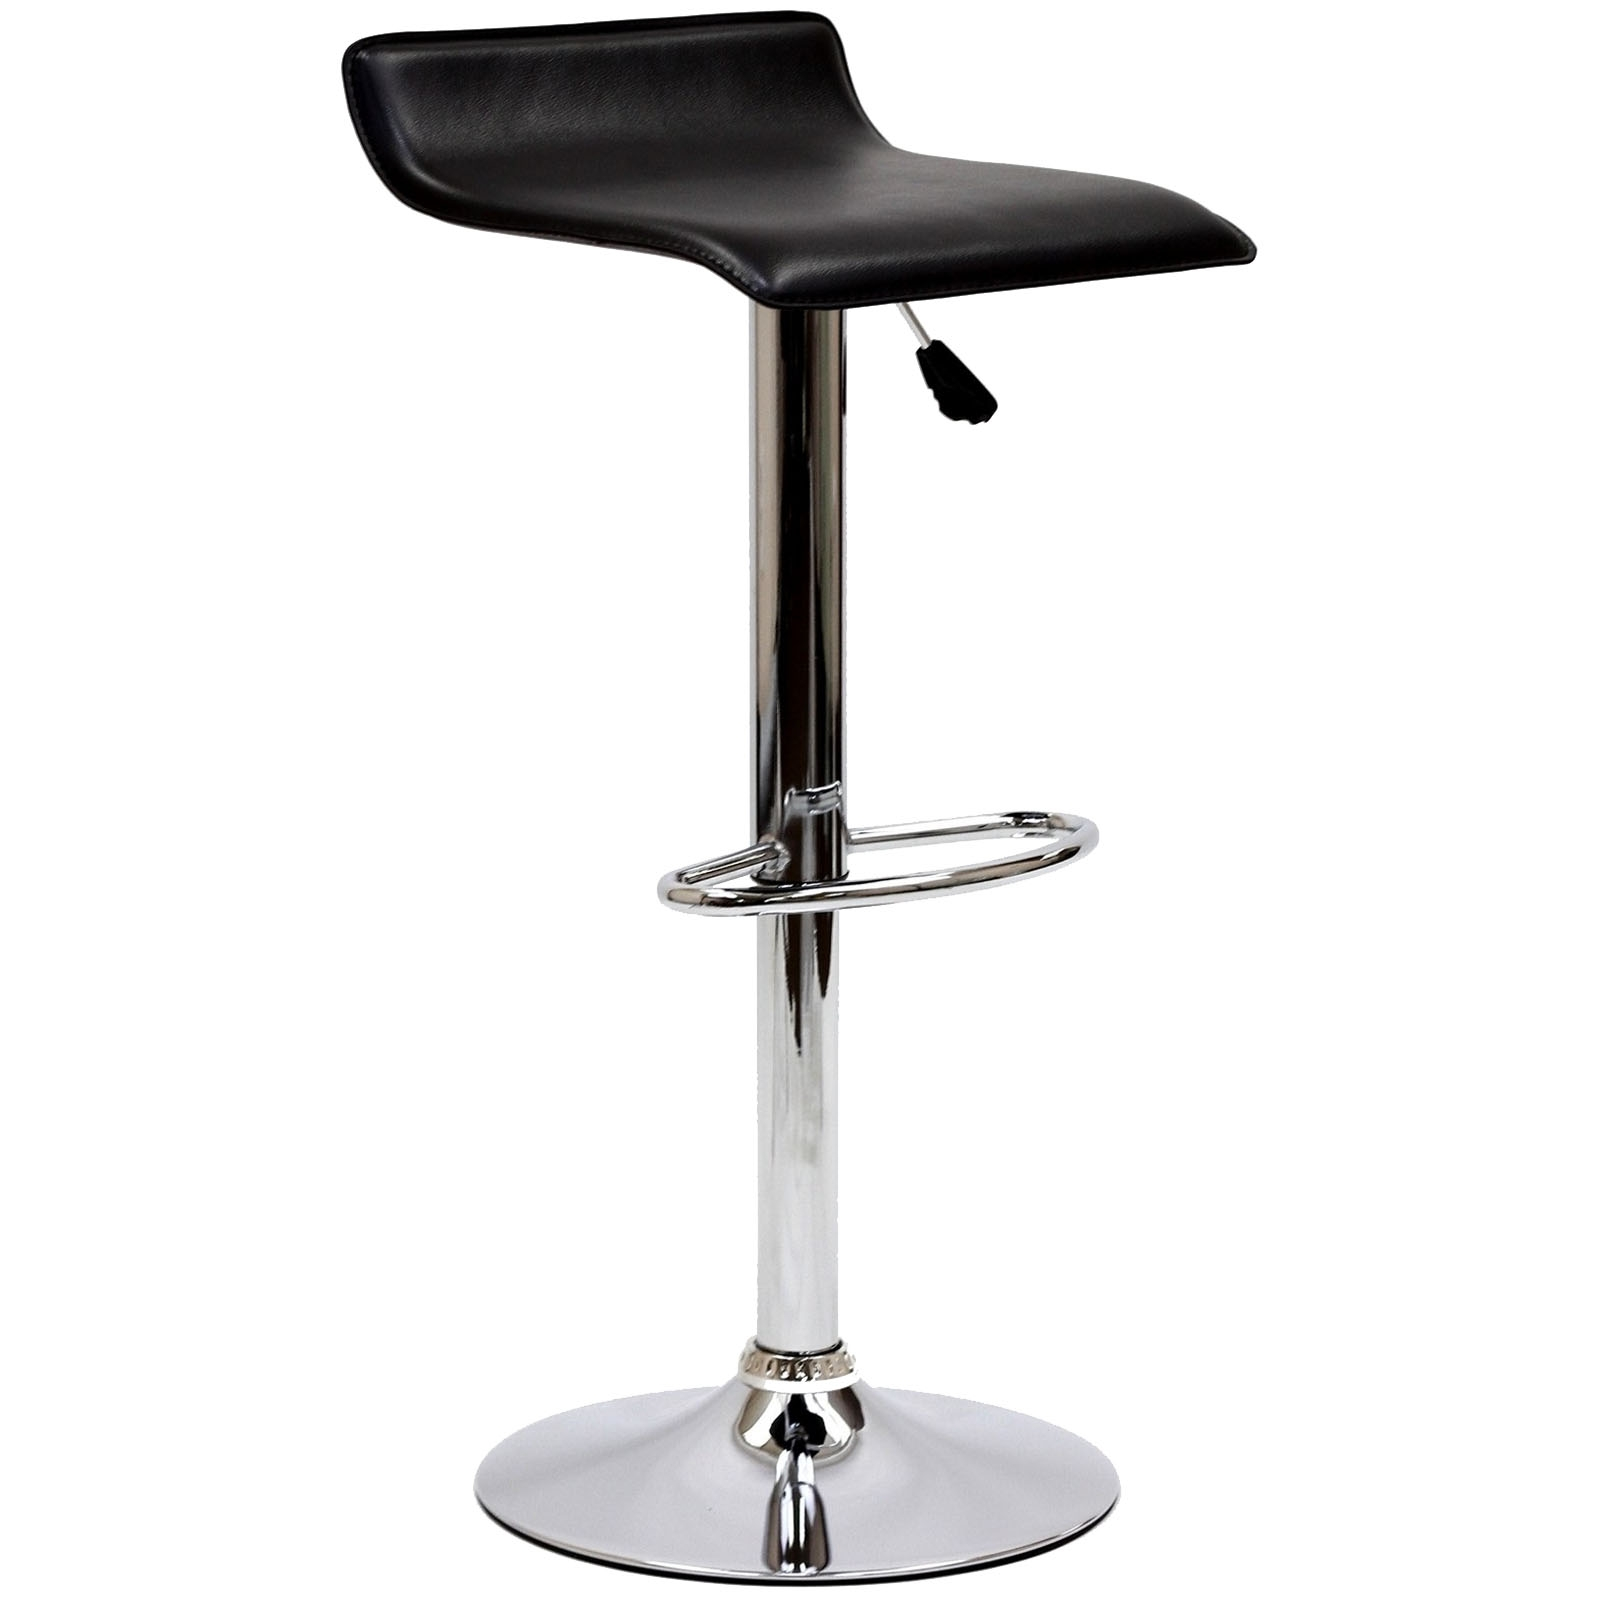 Cafe chairs CUB EEI 579 BLK MOD